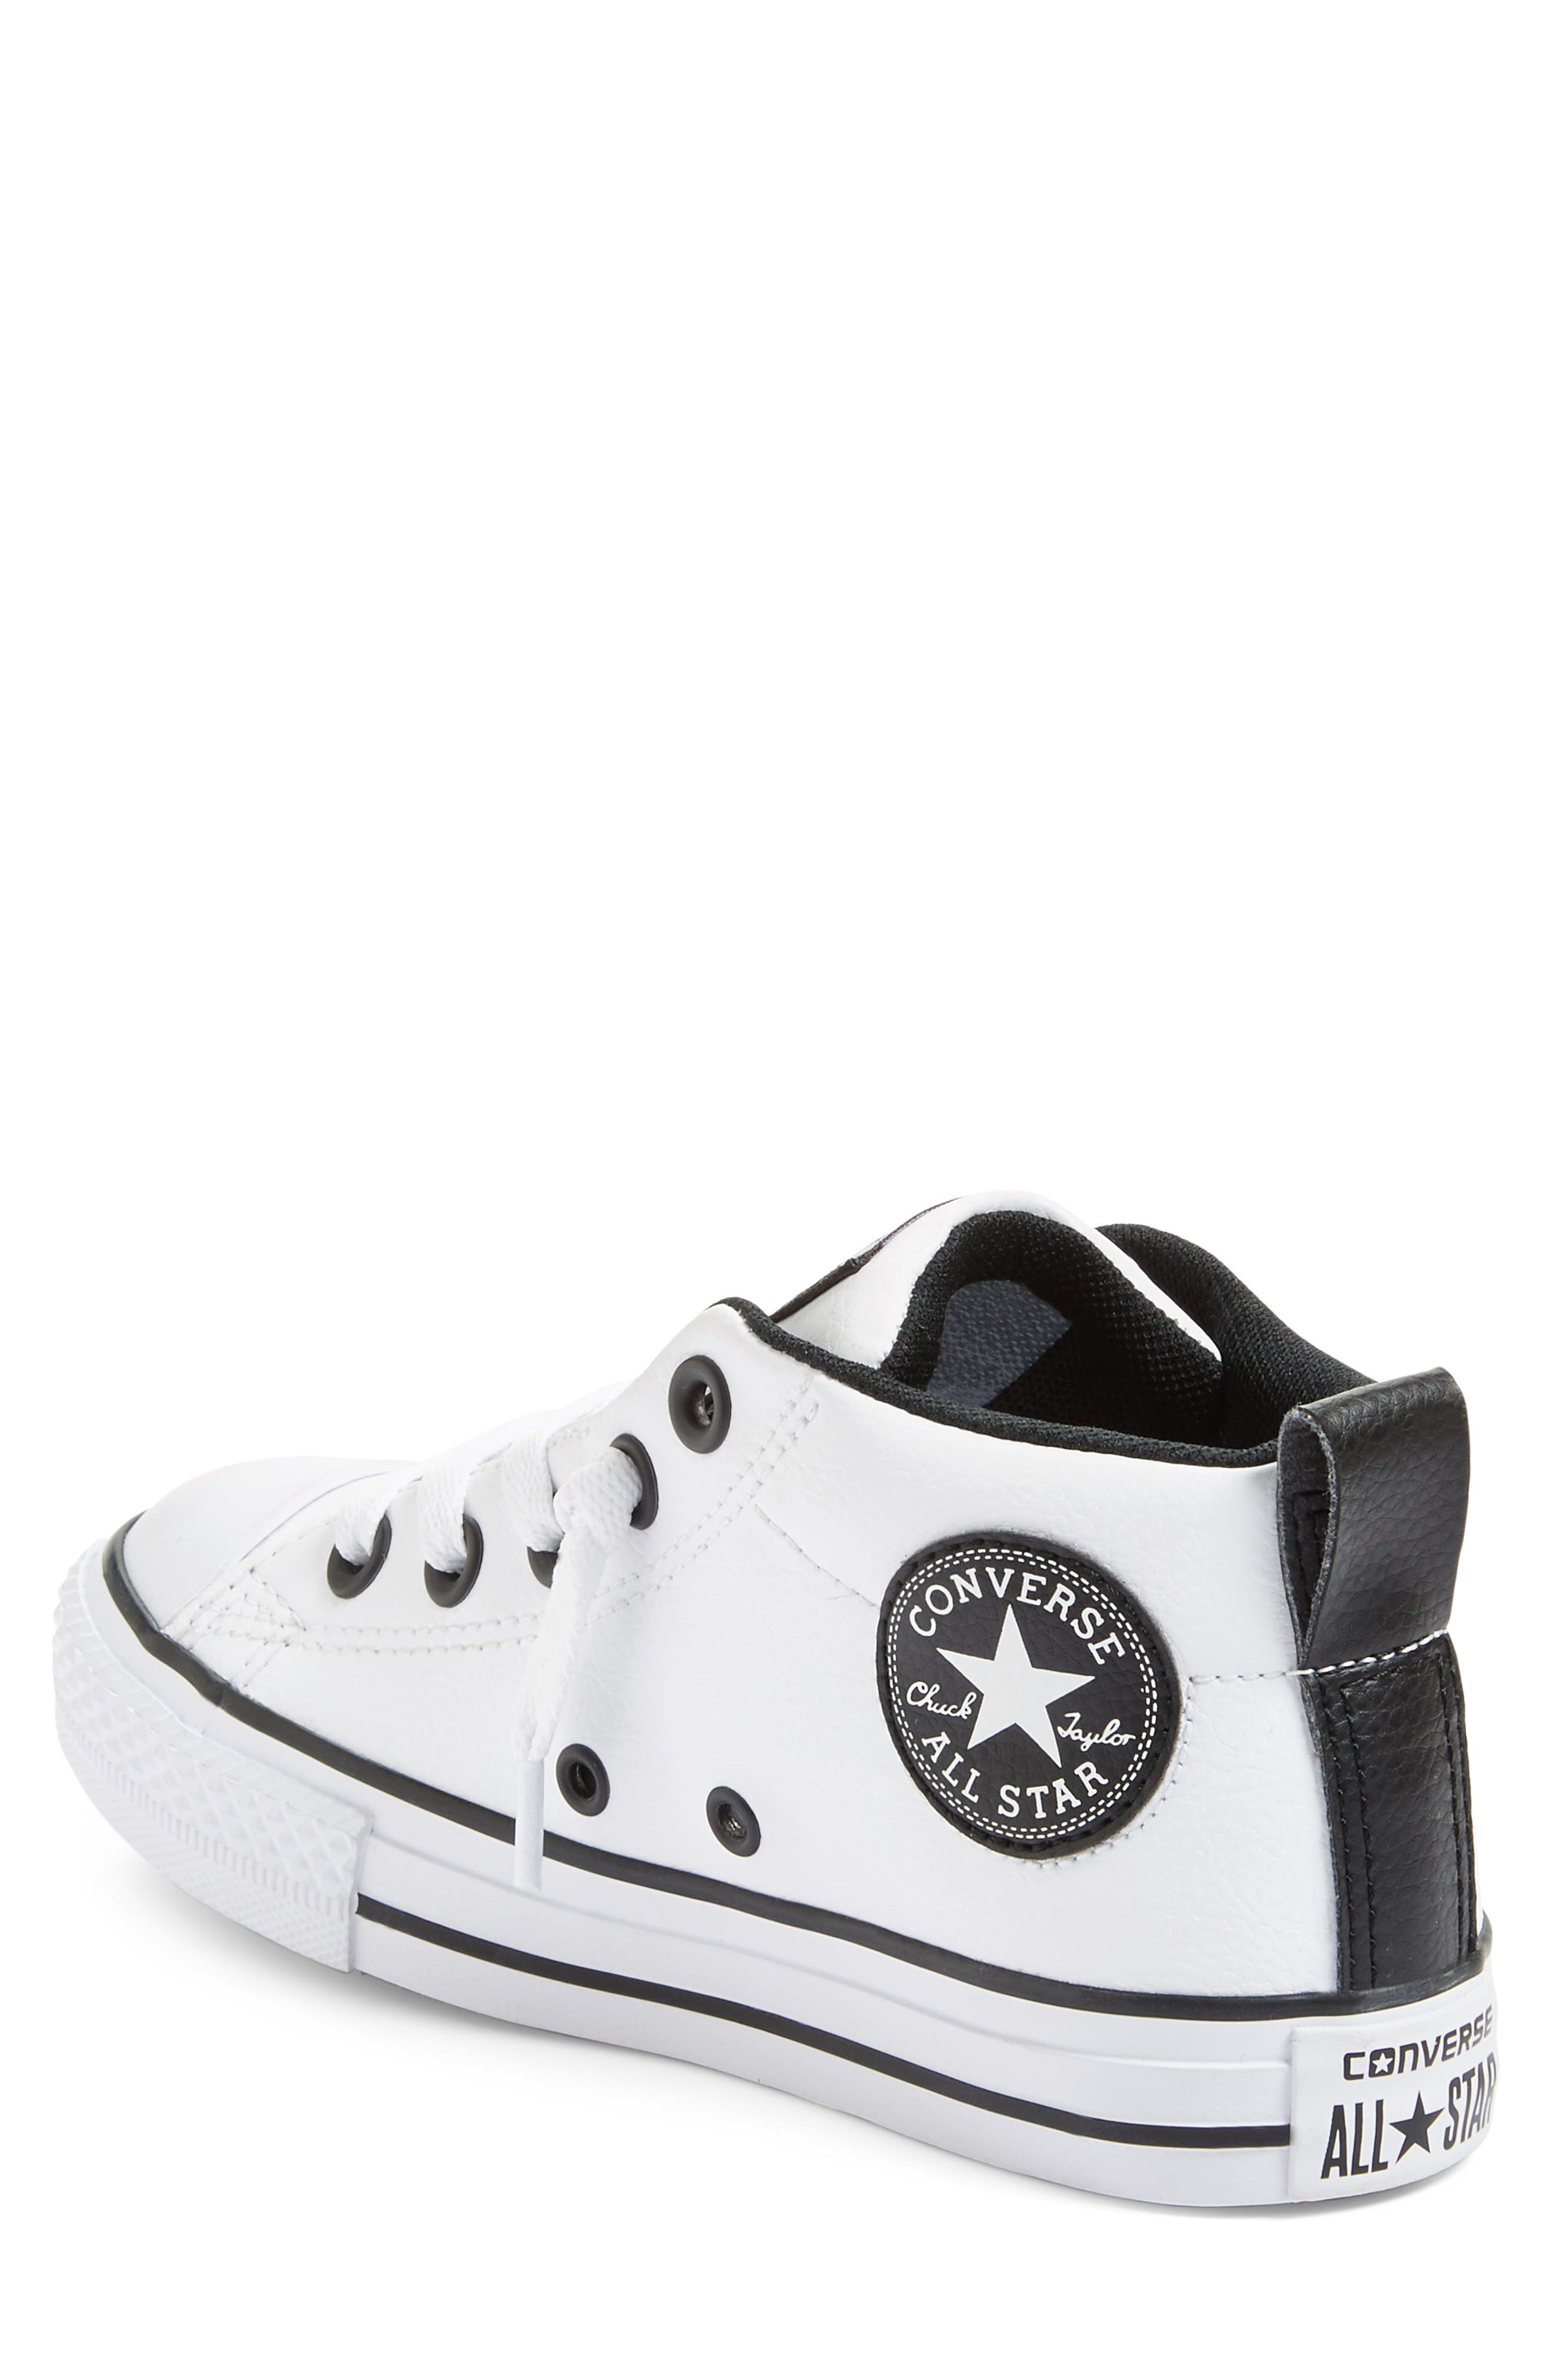 Alternate Image 2  - Converse Chuck Taylor® All Star® Mid High Sneaker (Toddler, Little Kid & Big Kid)